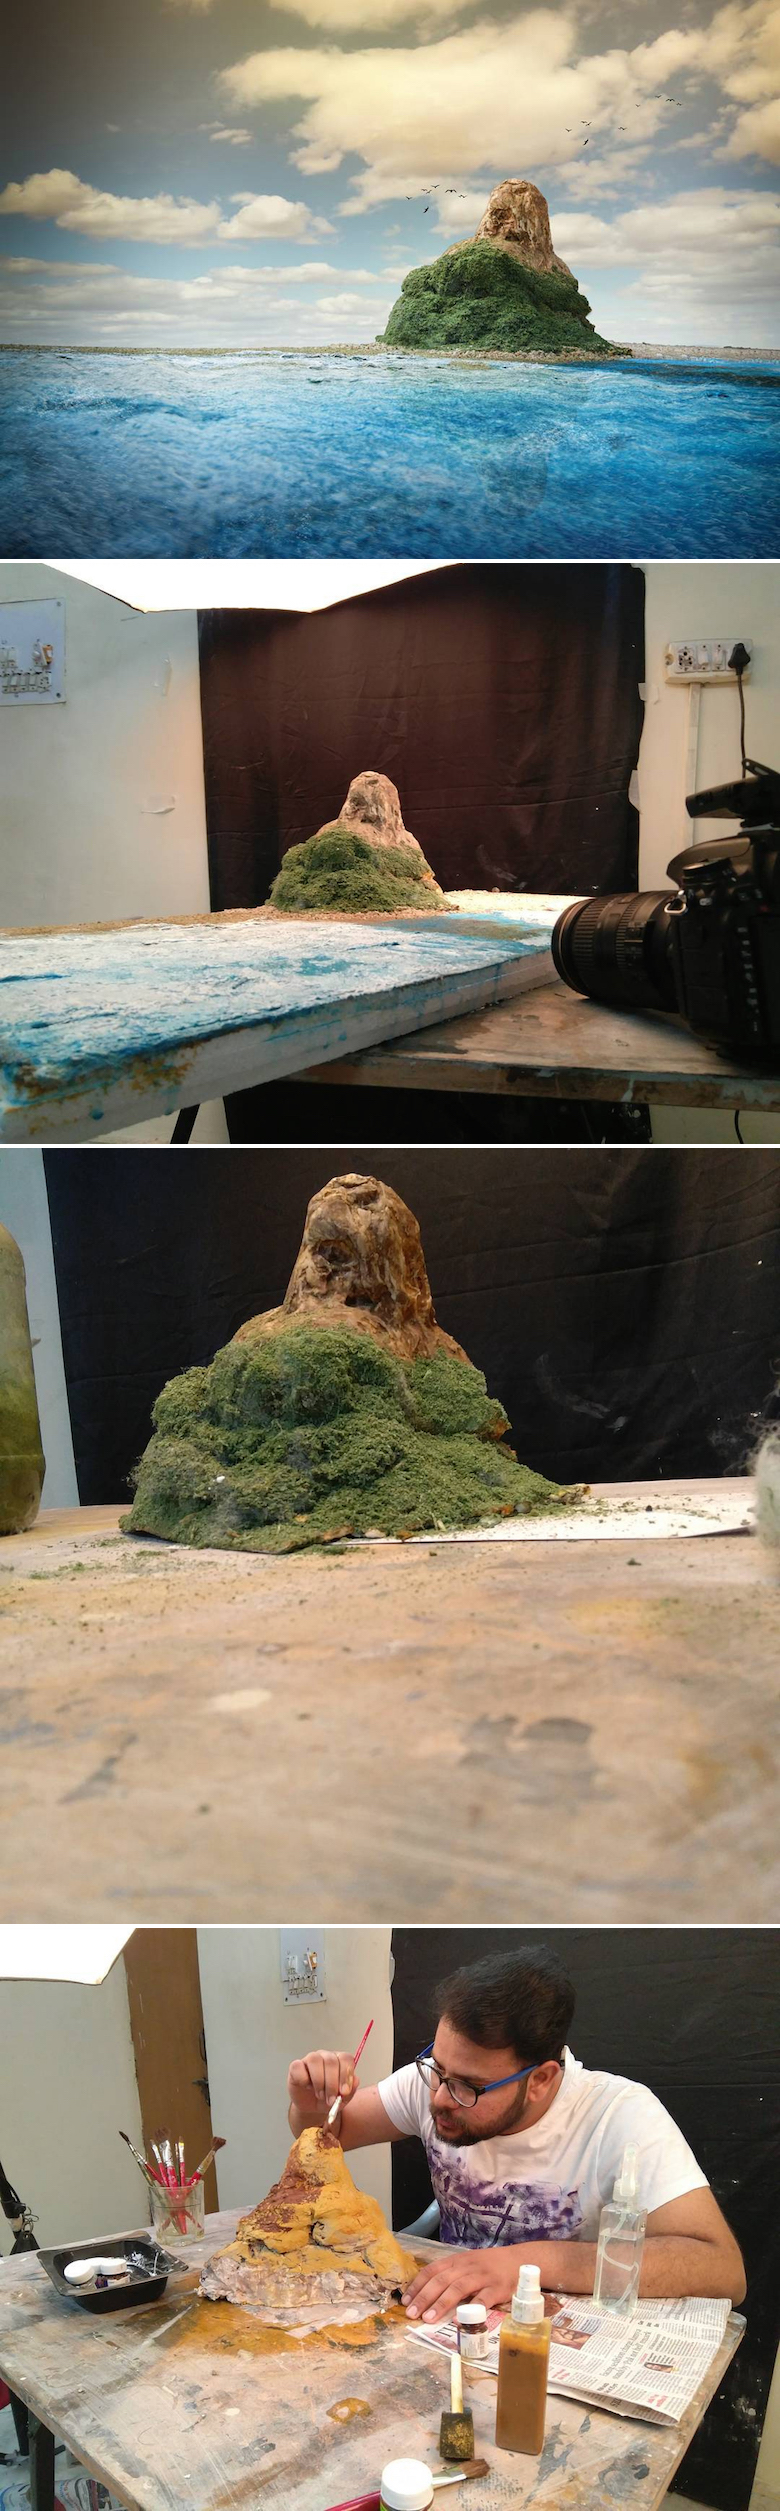 Miniature photography, small-scale landscape models - 25